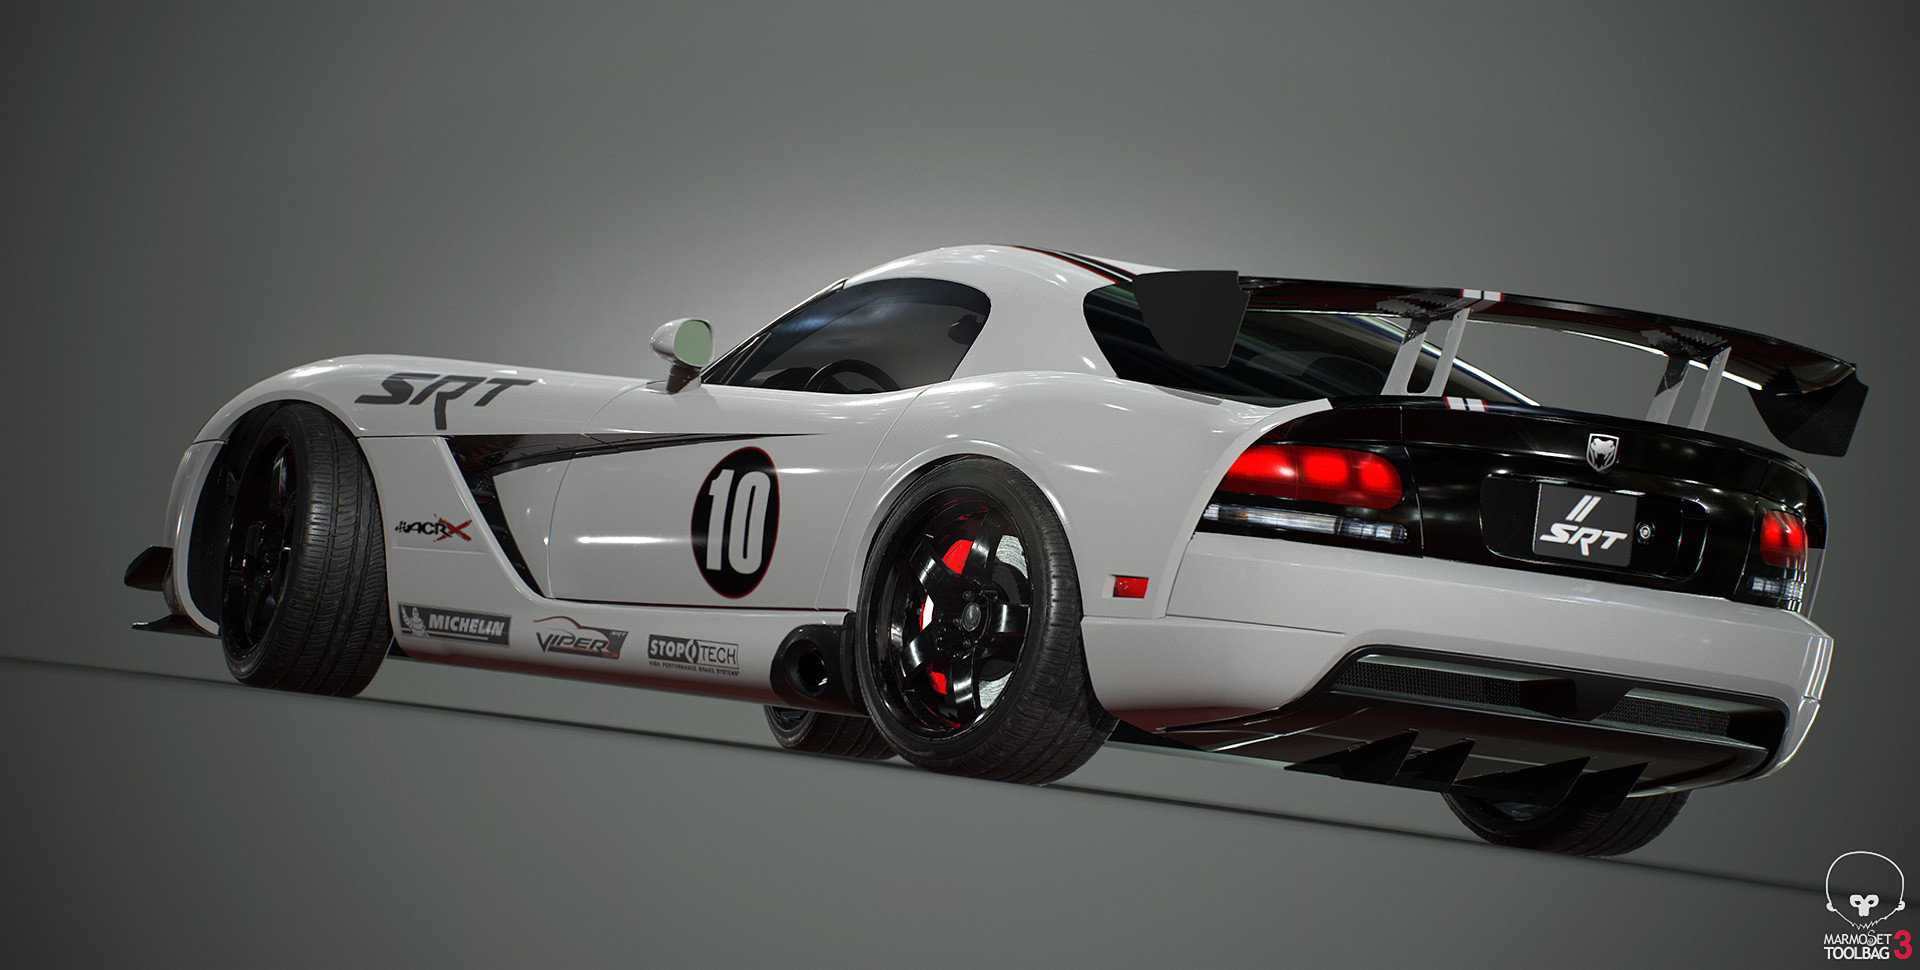 David letondor dodgeviper srt10 david letondor v3 4